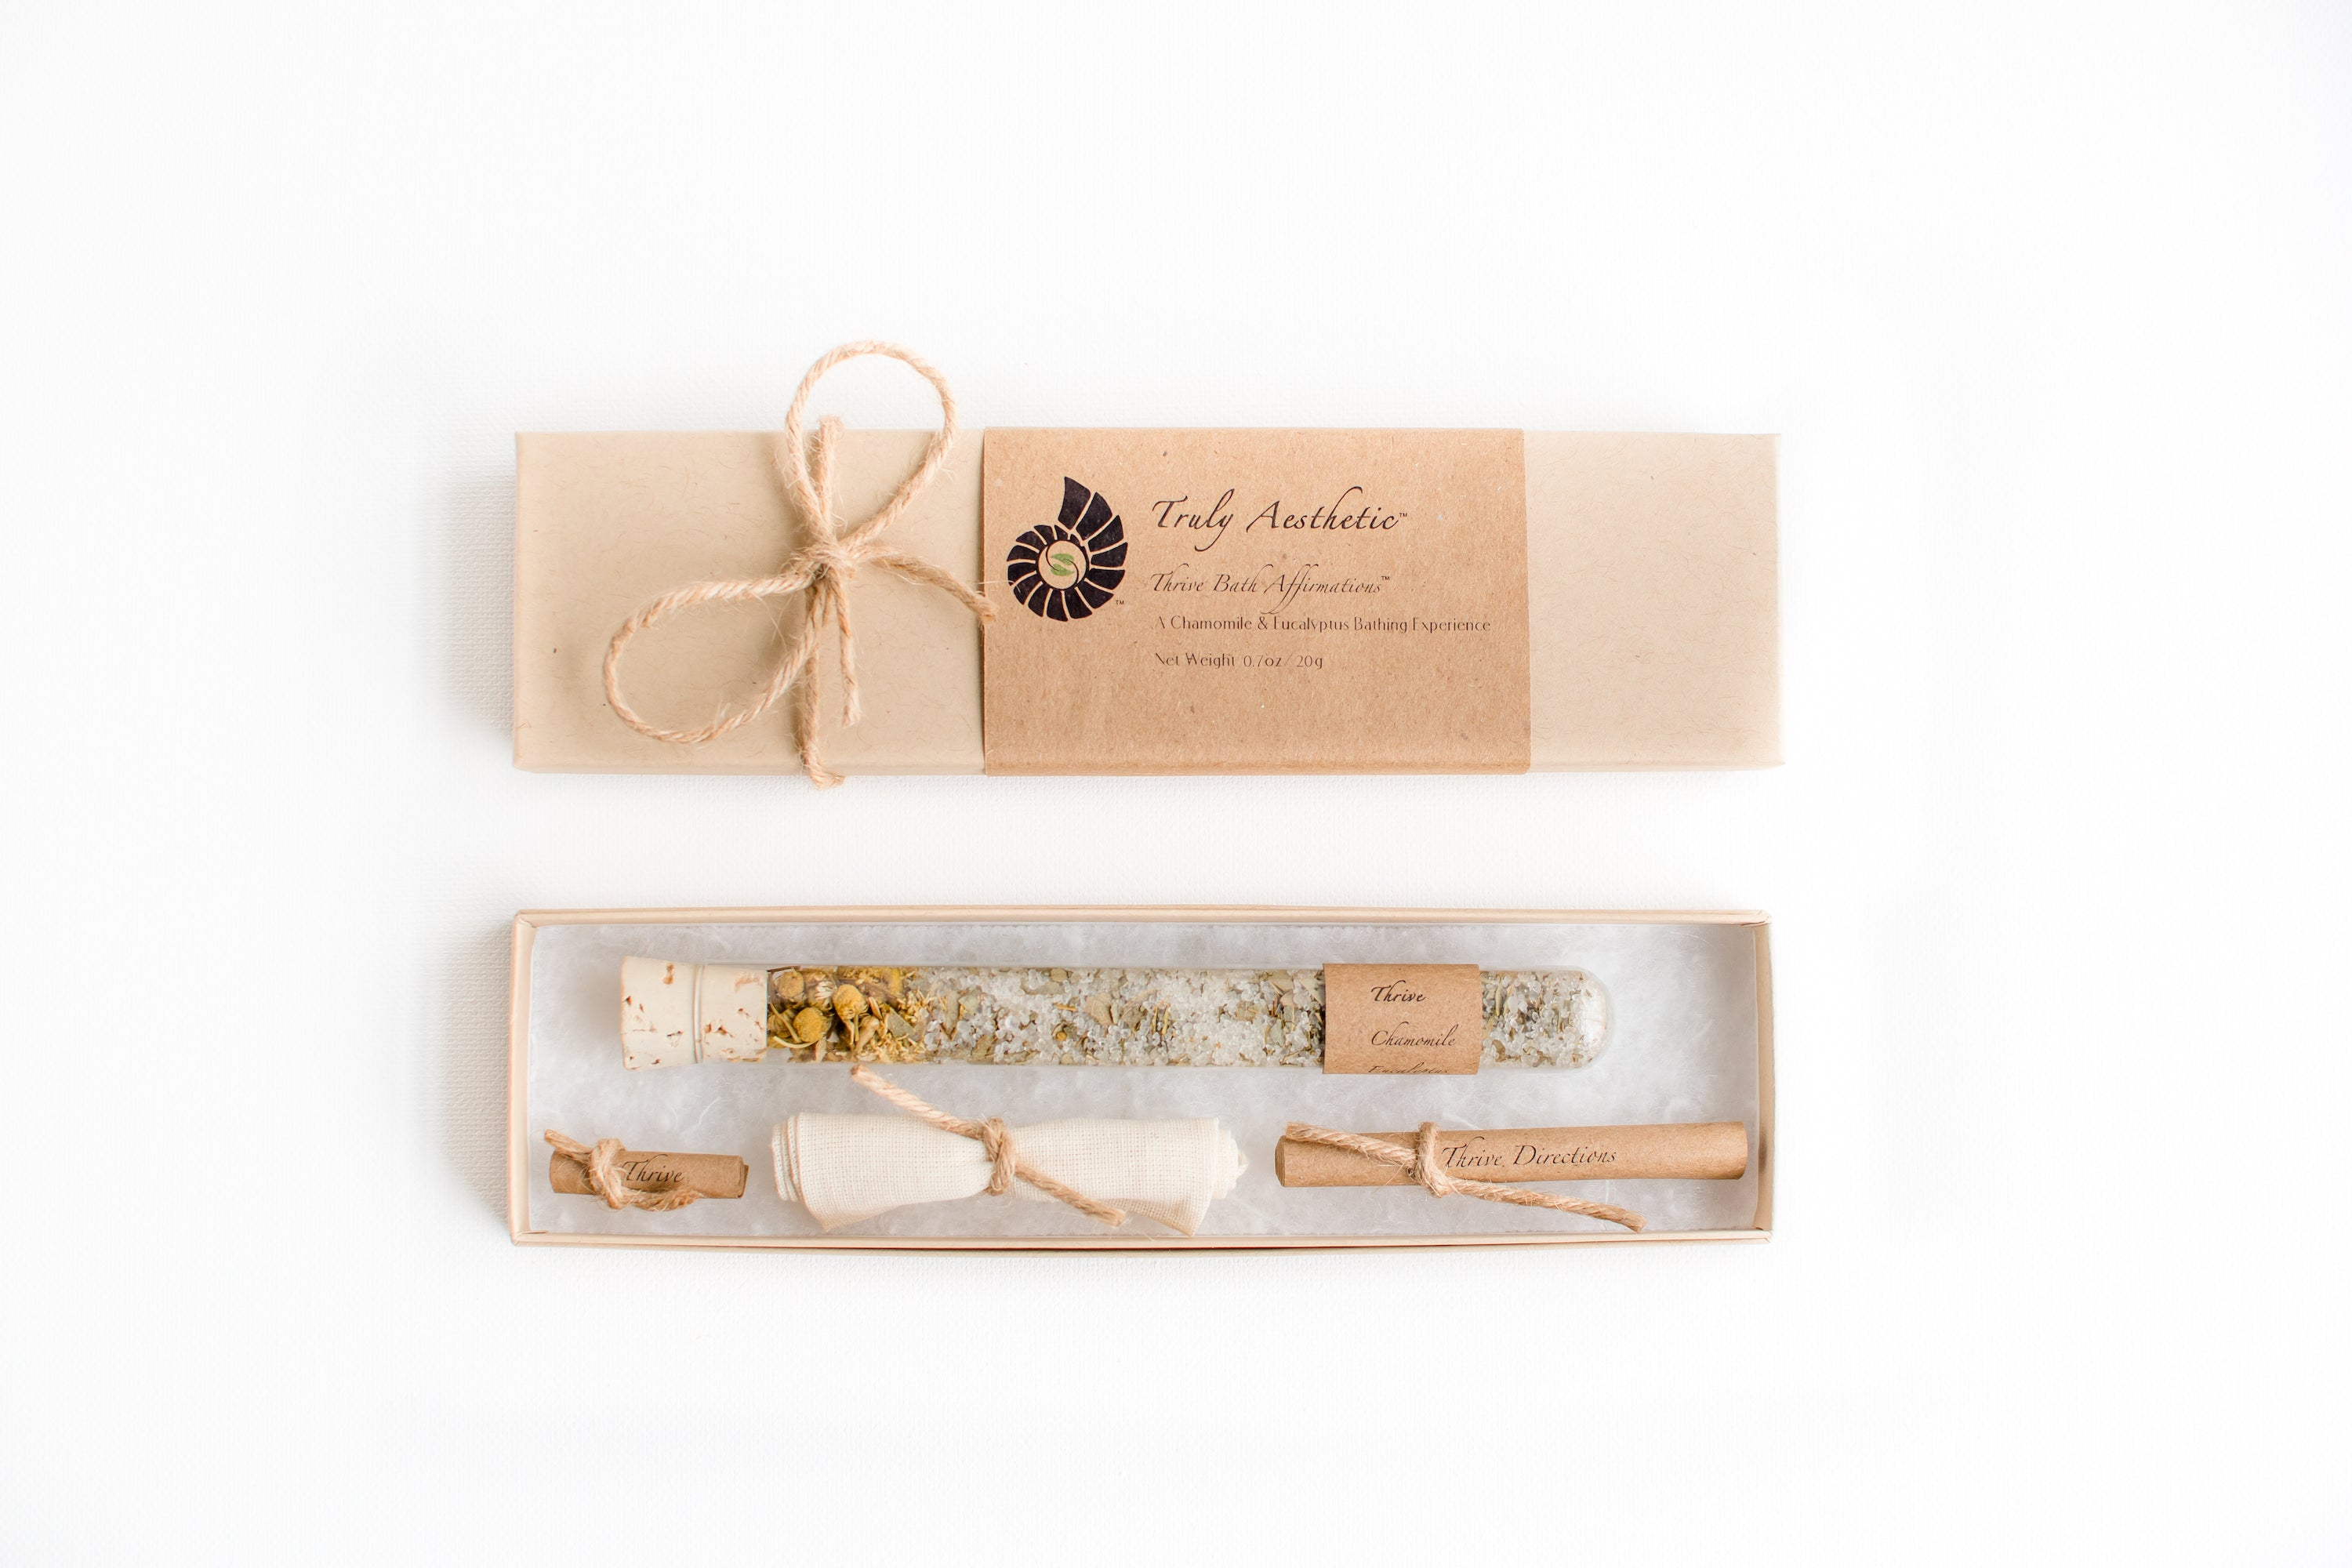 Truly Aesthetic Thrive Chamomile Eucalyptus Petite Bath Affirmations Bath Salts Gift Box Set Packaging